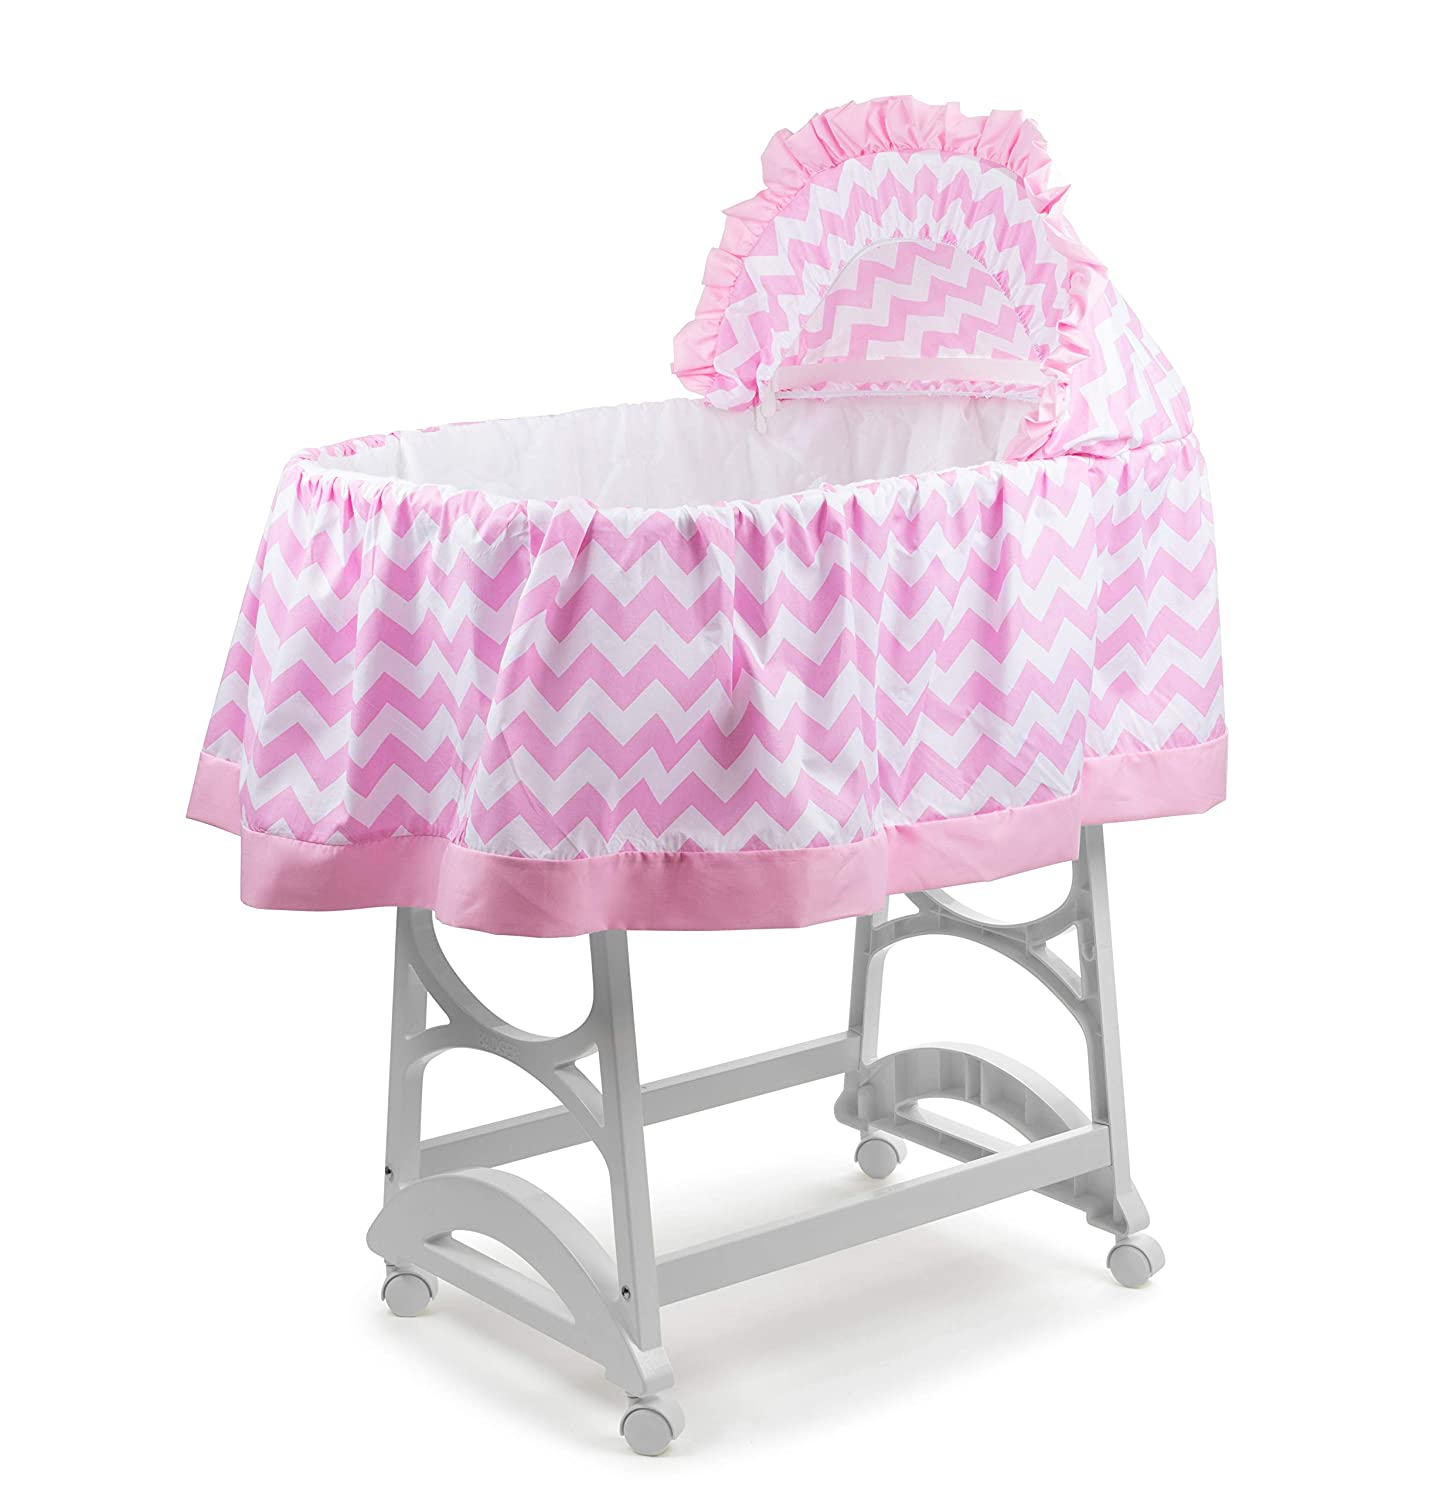 aBaby Chevron Short Bassinet Skirt, Pink, Large 009243422884